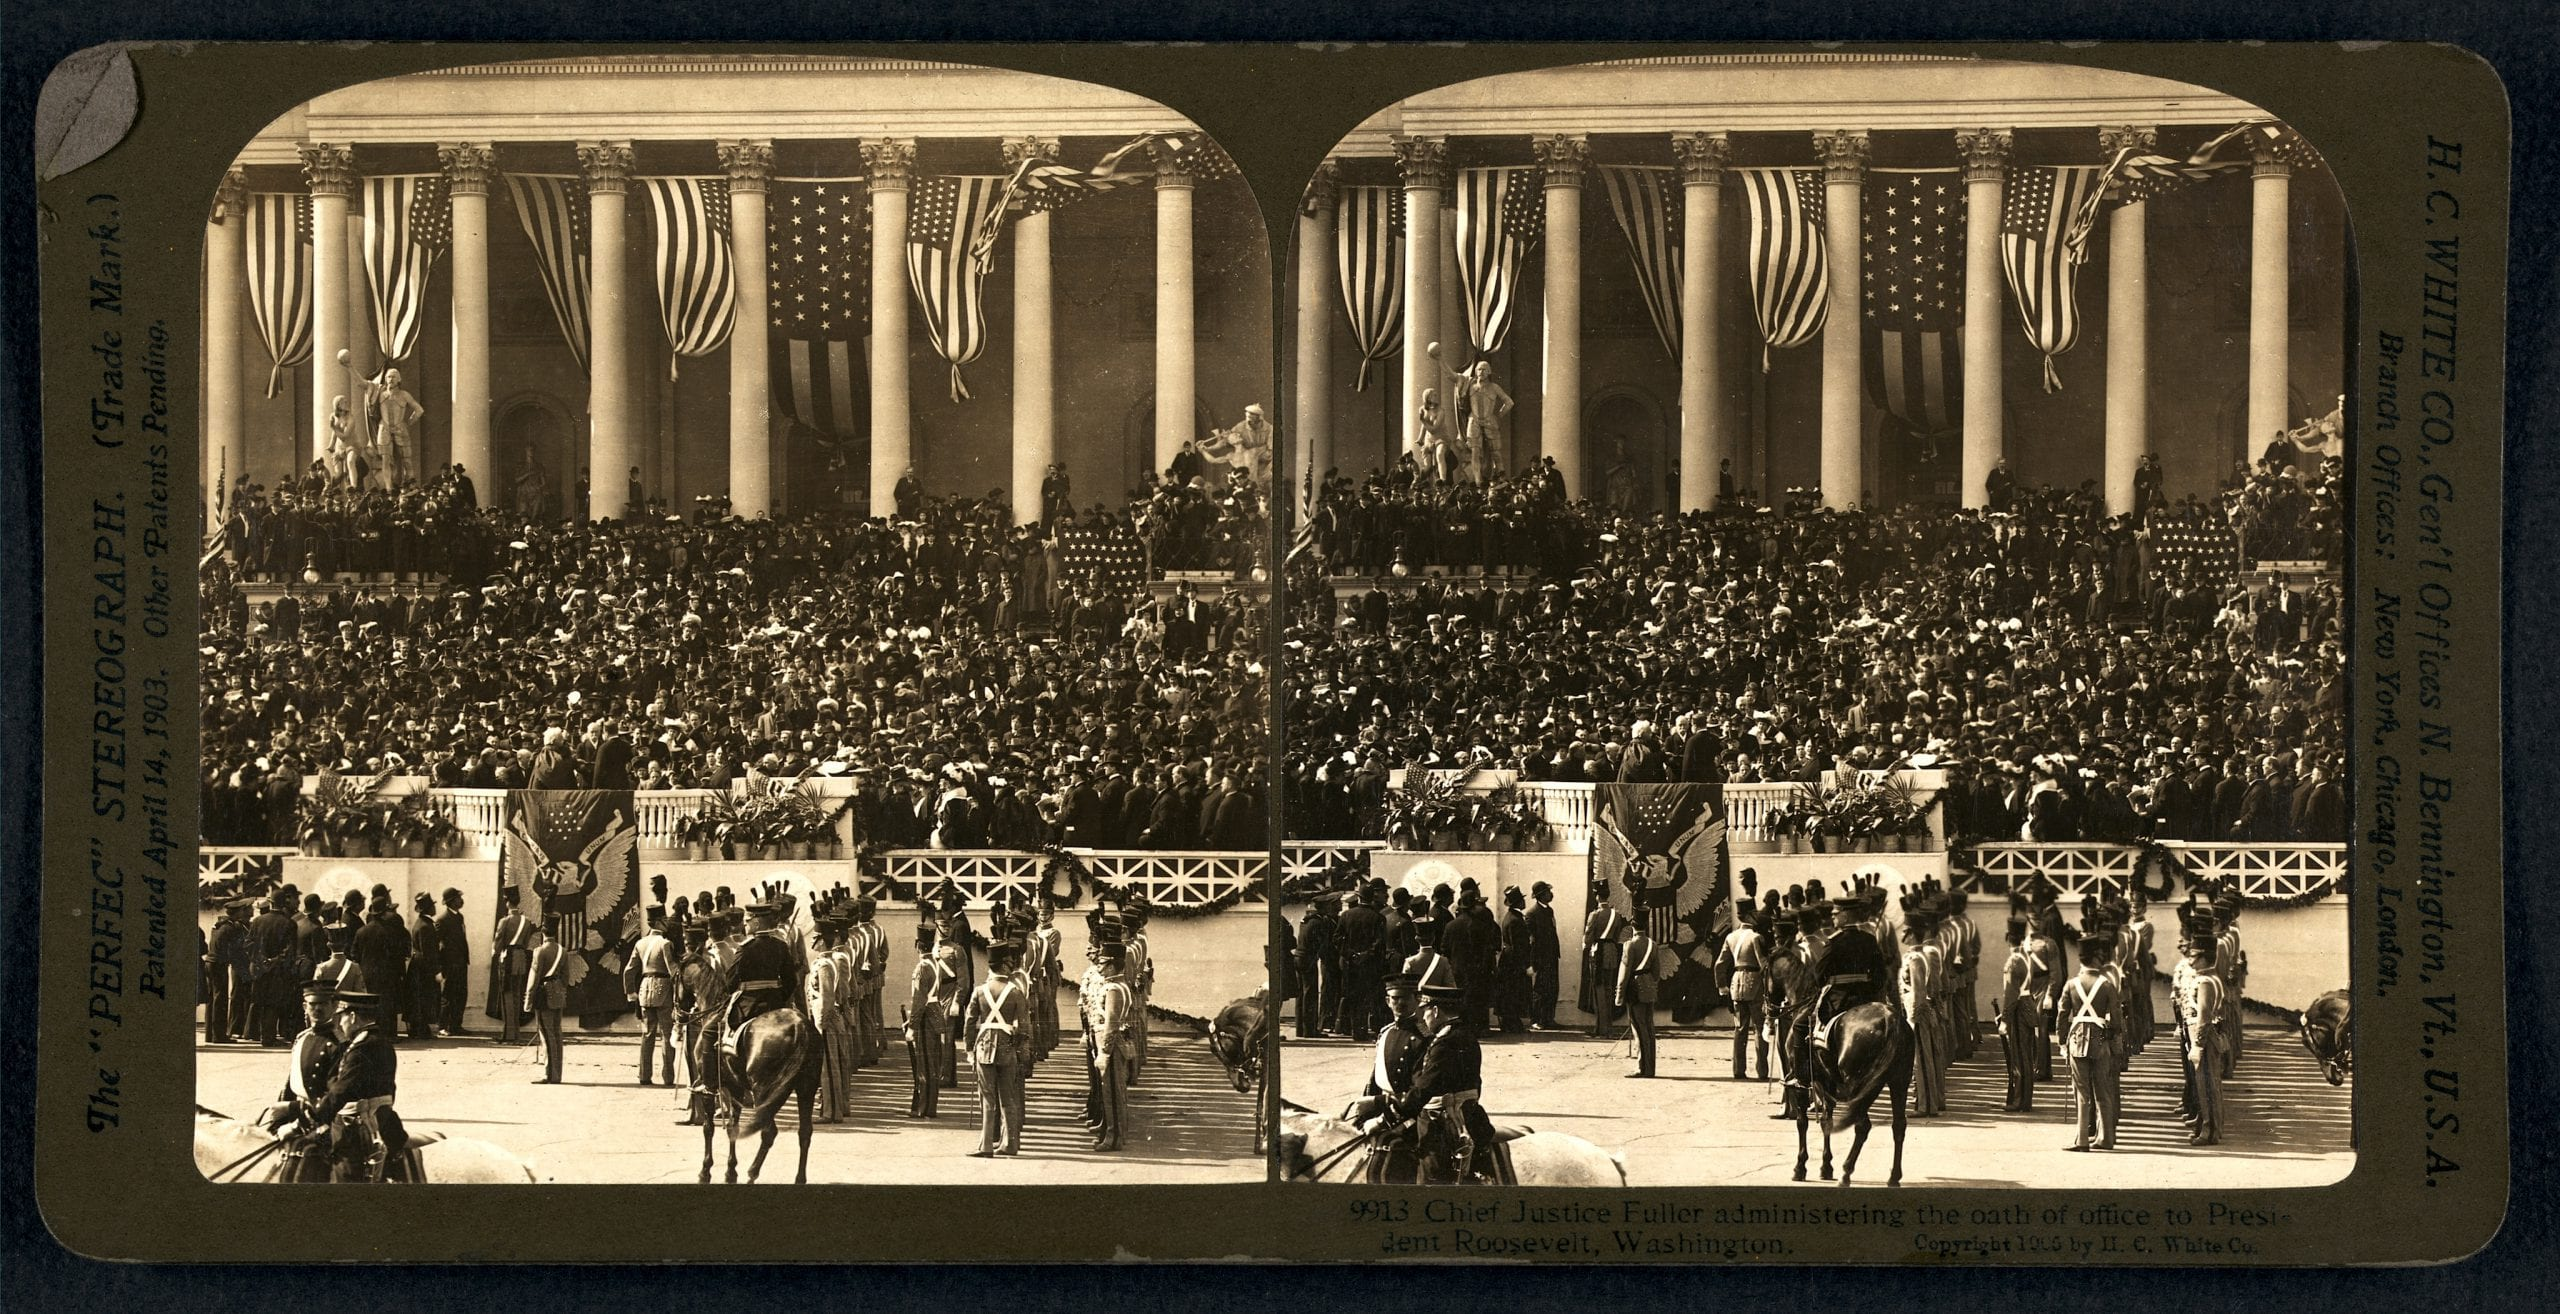 Teddy Roosevelt's inauguration in 1905